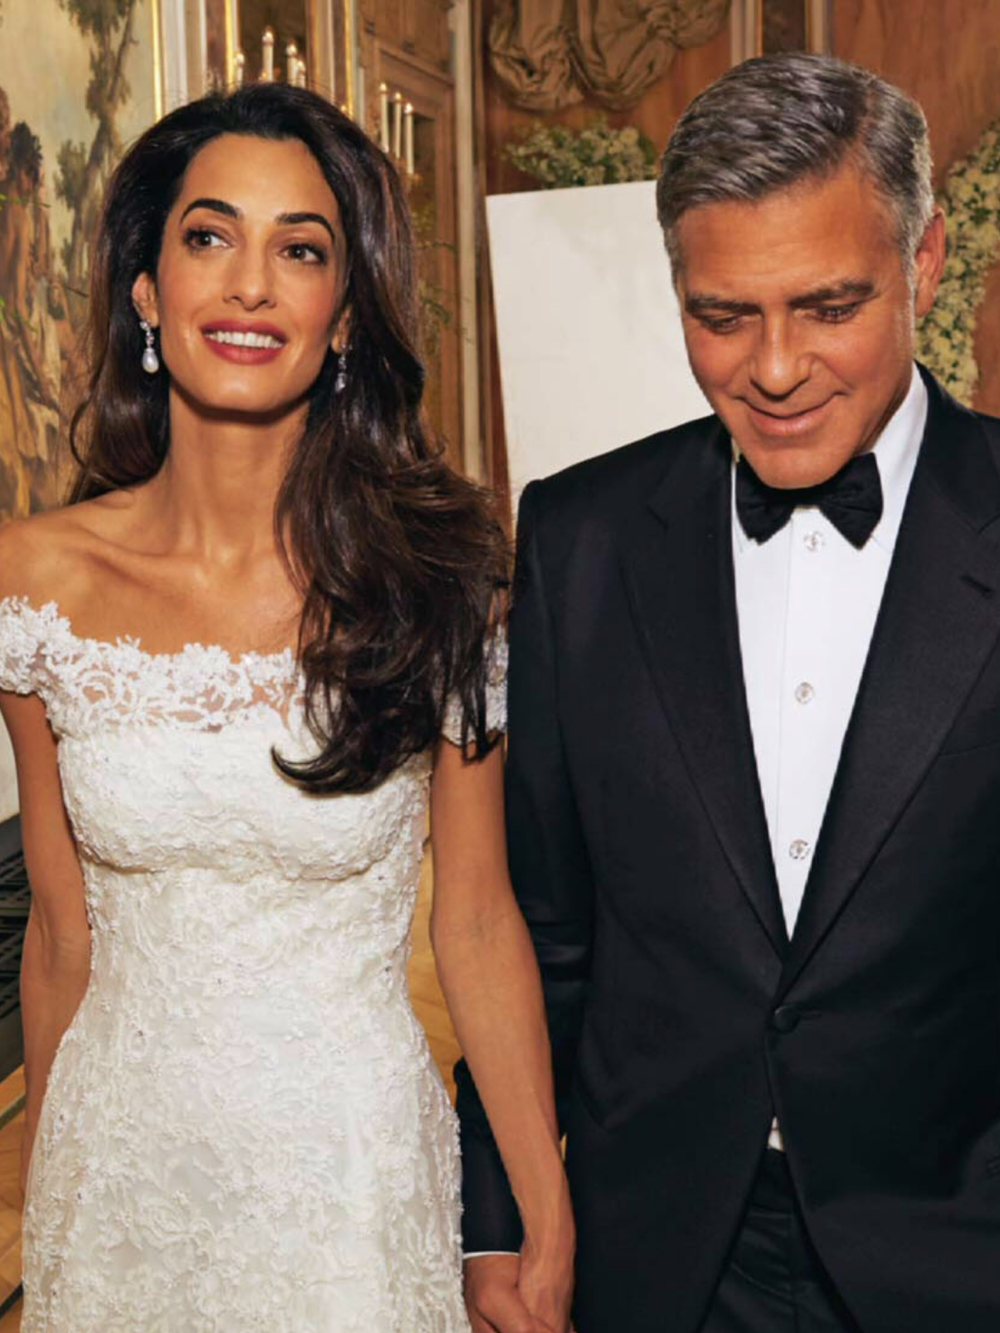 Amal and George Clooney at their 2014 Italian wedding | follow along on Instagram @ thewildflowers.events